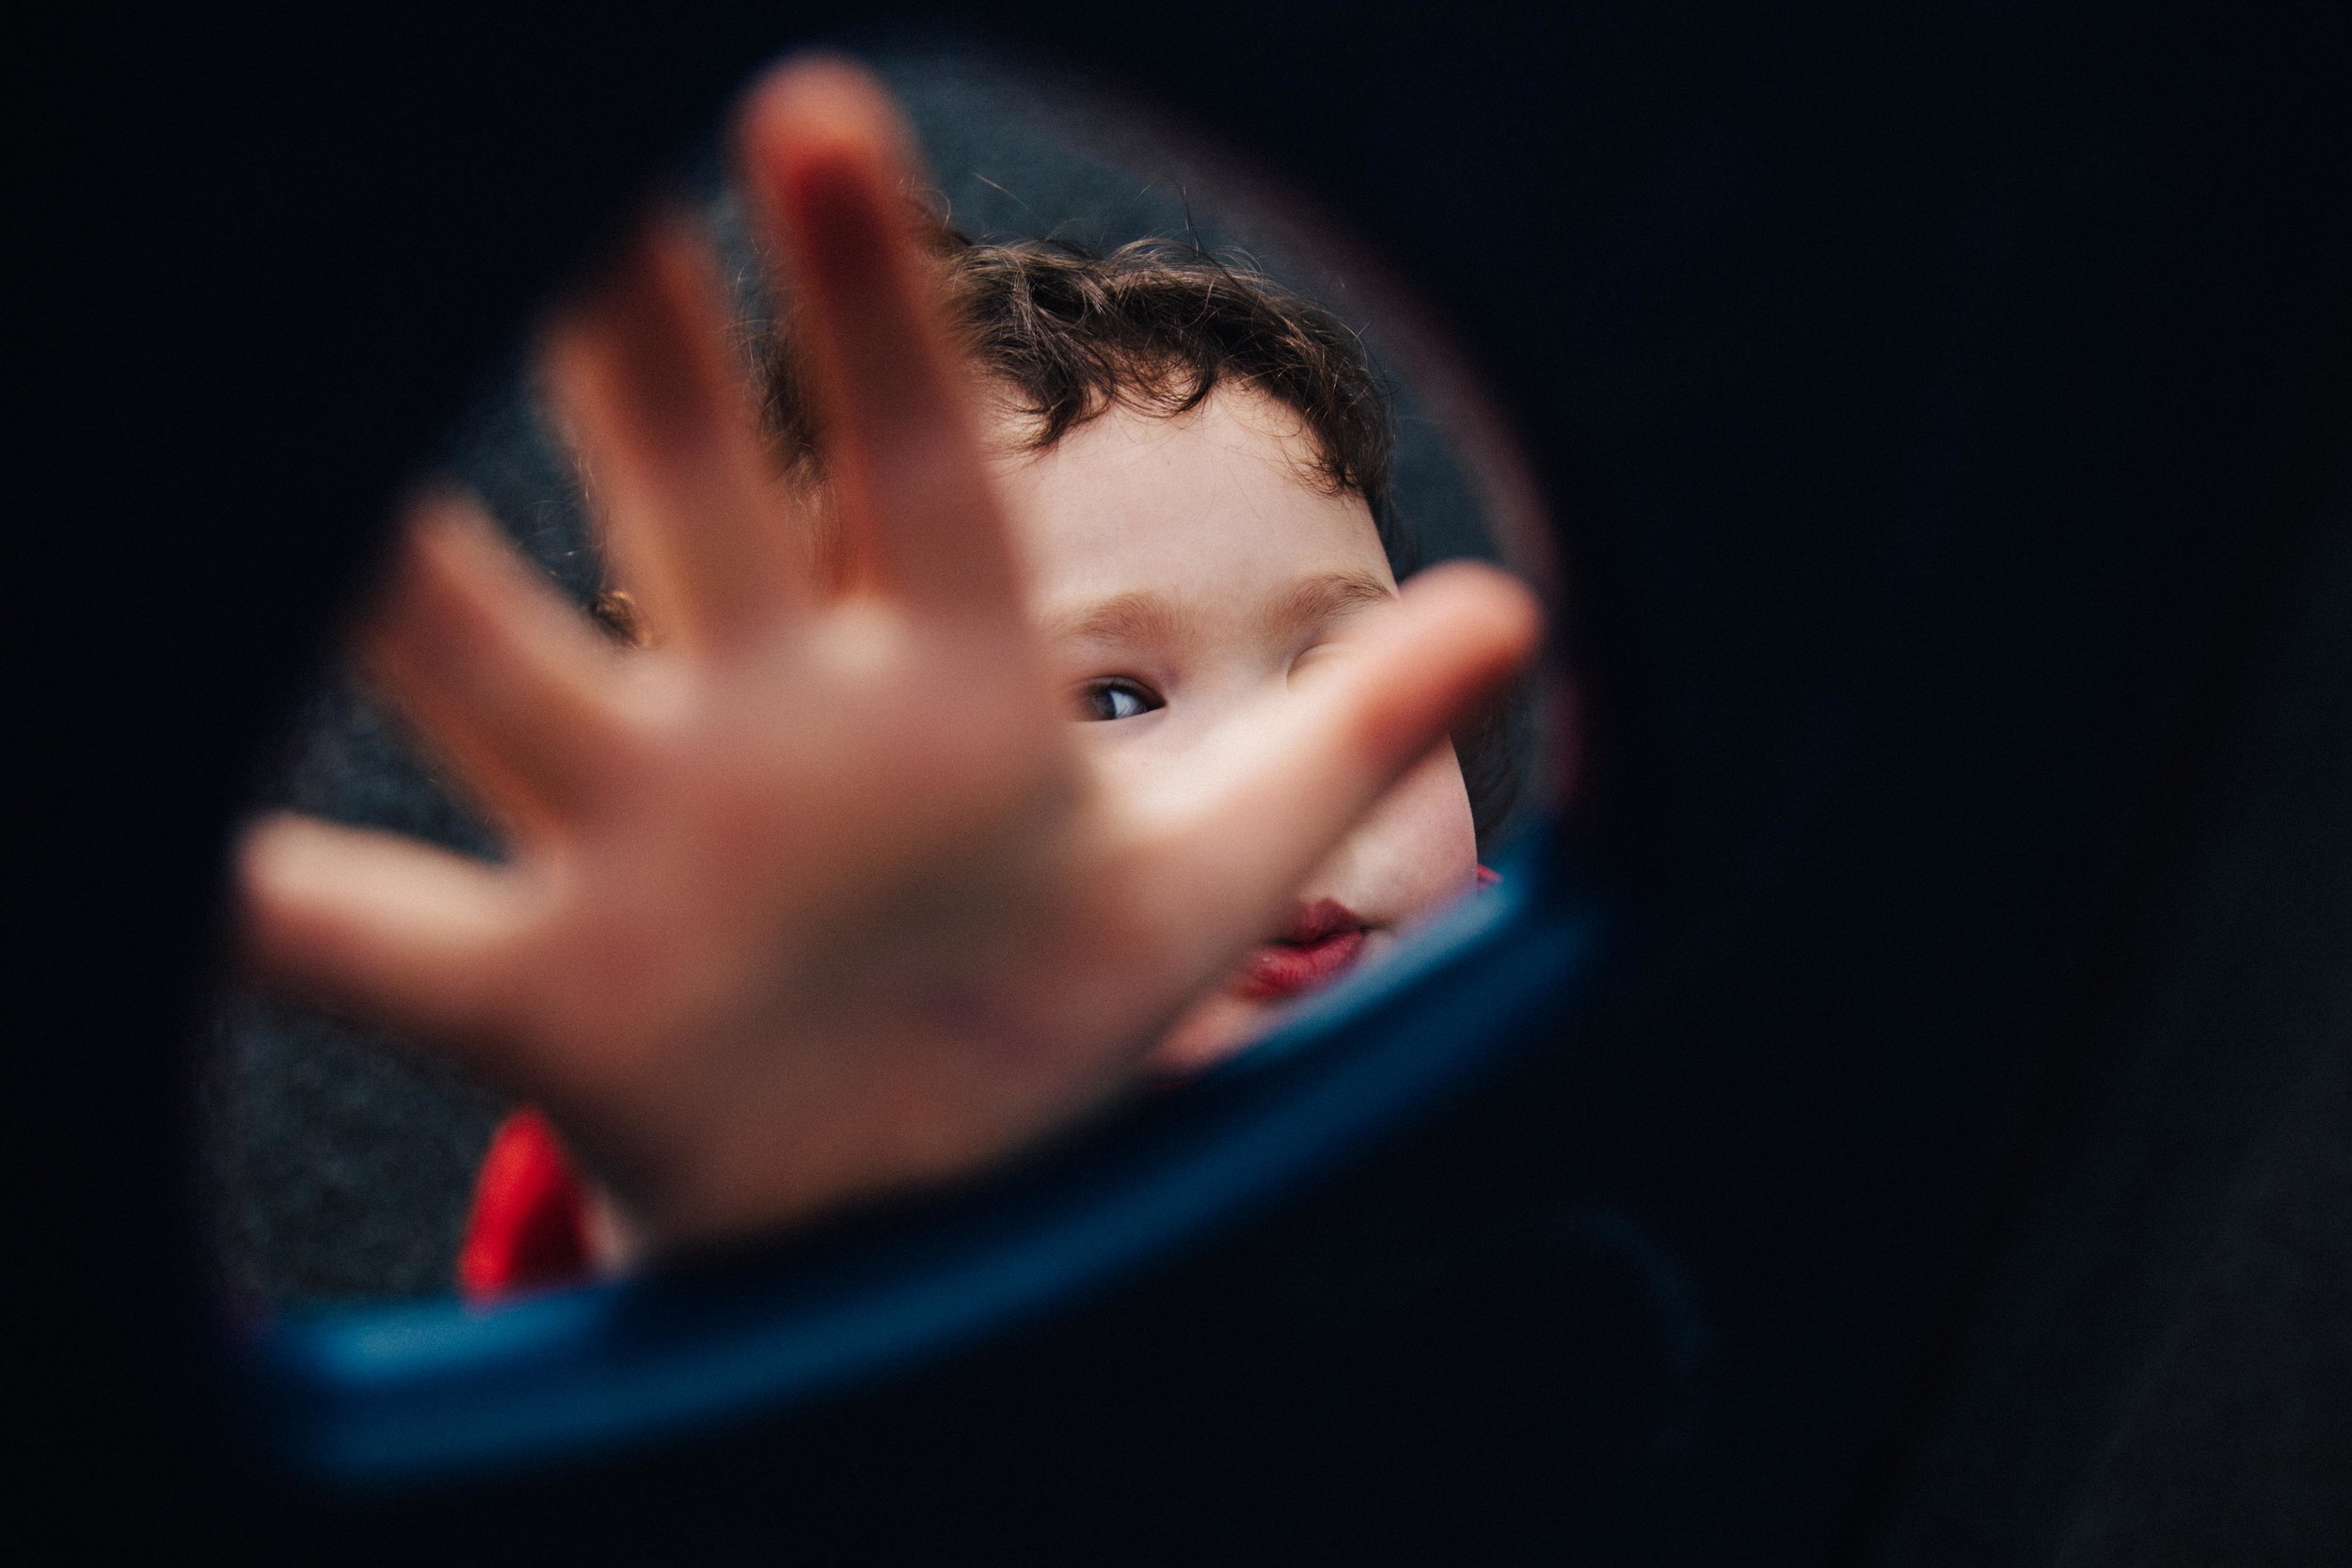 Child's hand hiding his face